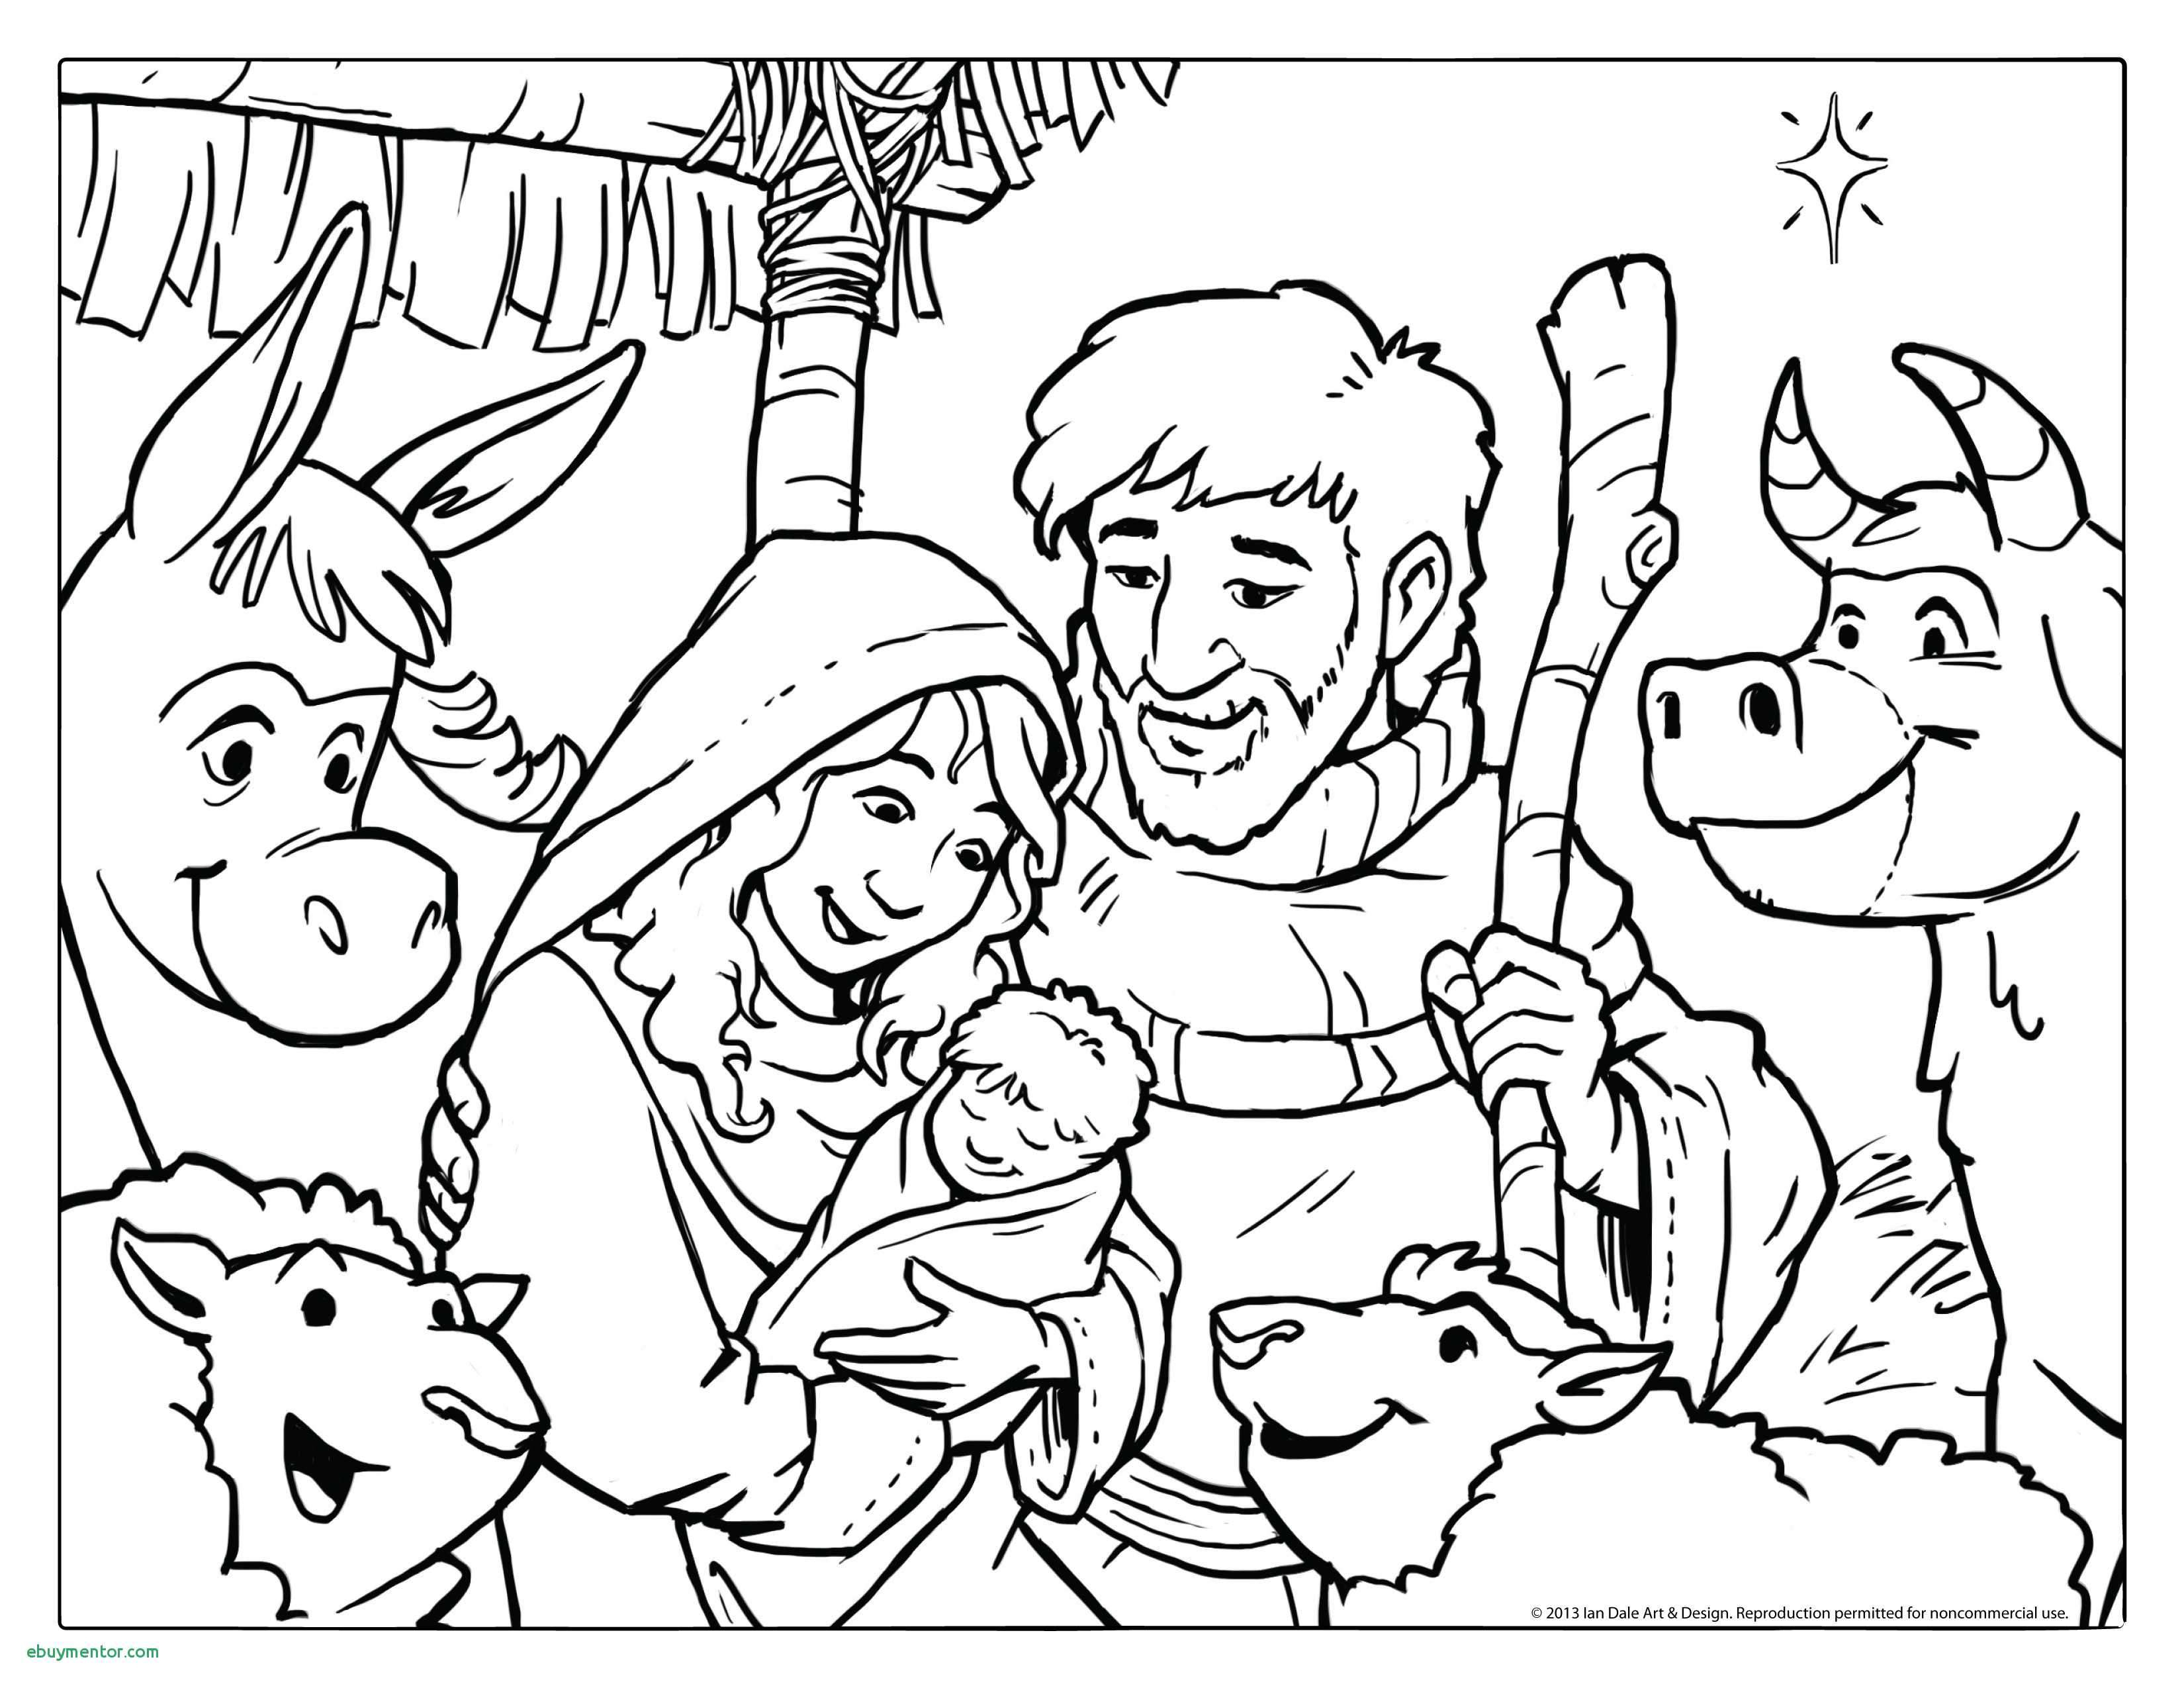 Printable Christmas Coloring Page Snowy Church With Icicles. New - Free Printable Bible Christmas Coloring Pages